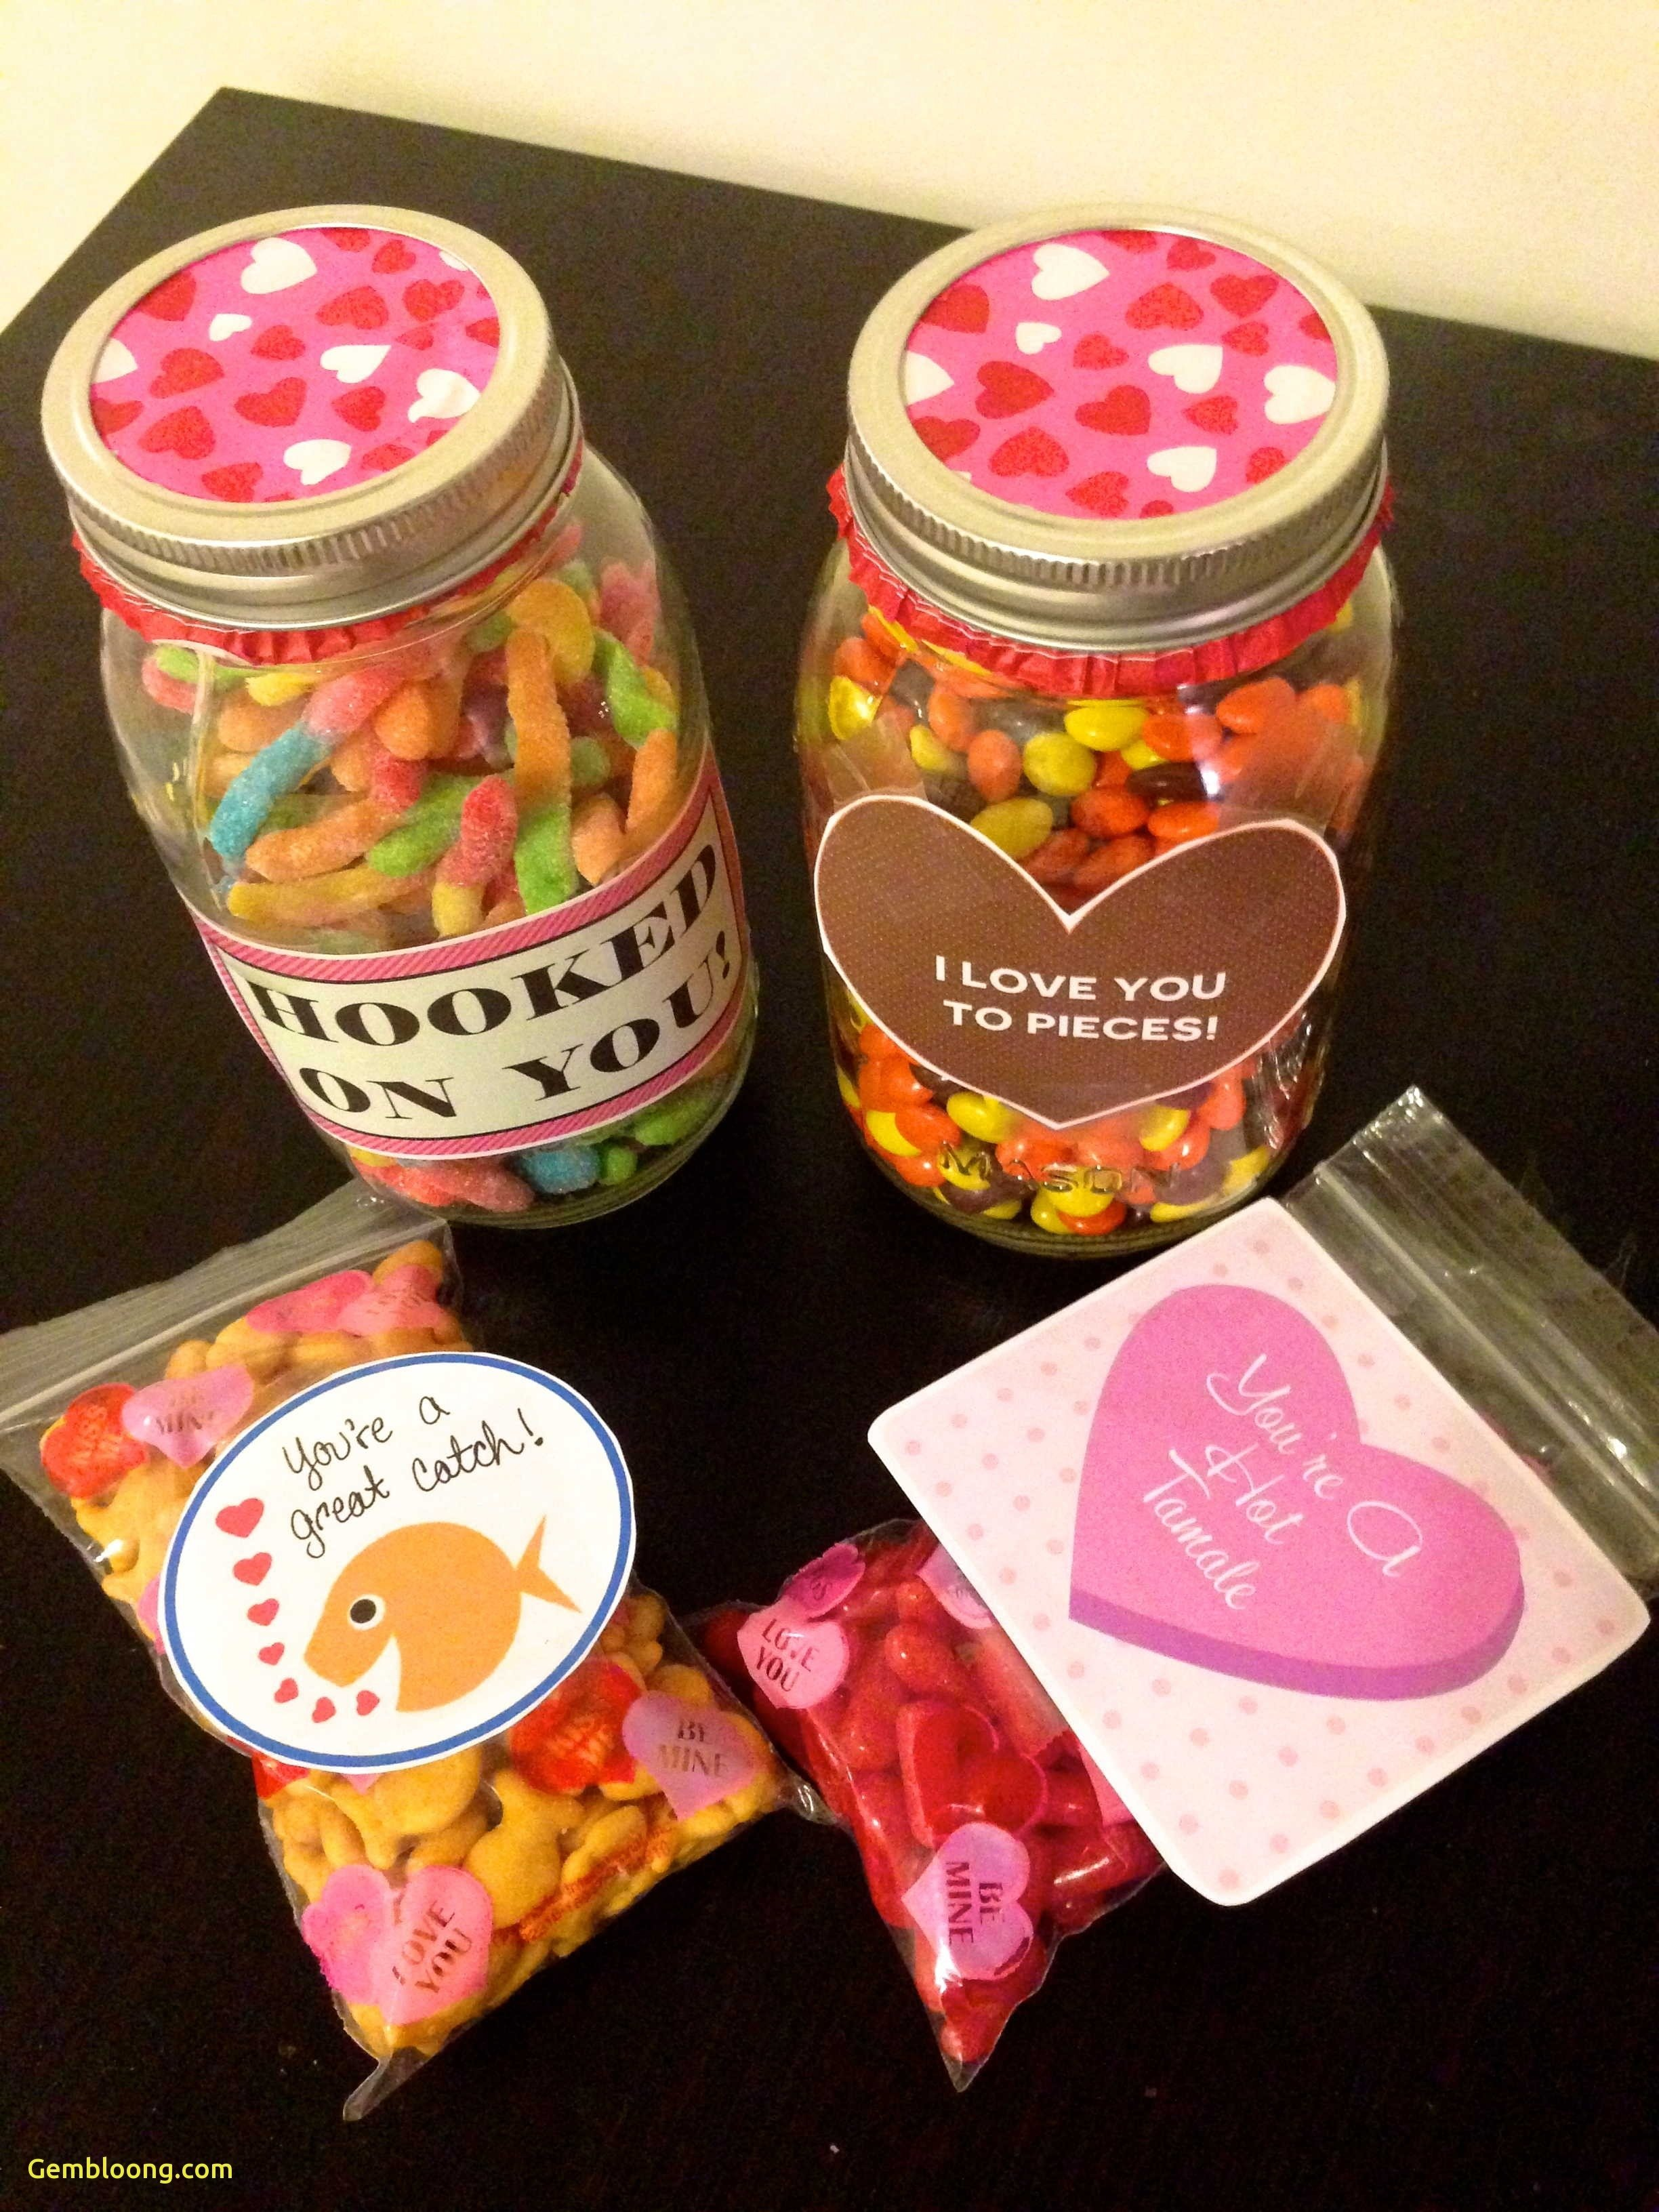 10 Stylish Valentine Gifts Ideas For Him new valentine gifts ideas for him best templates 2020